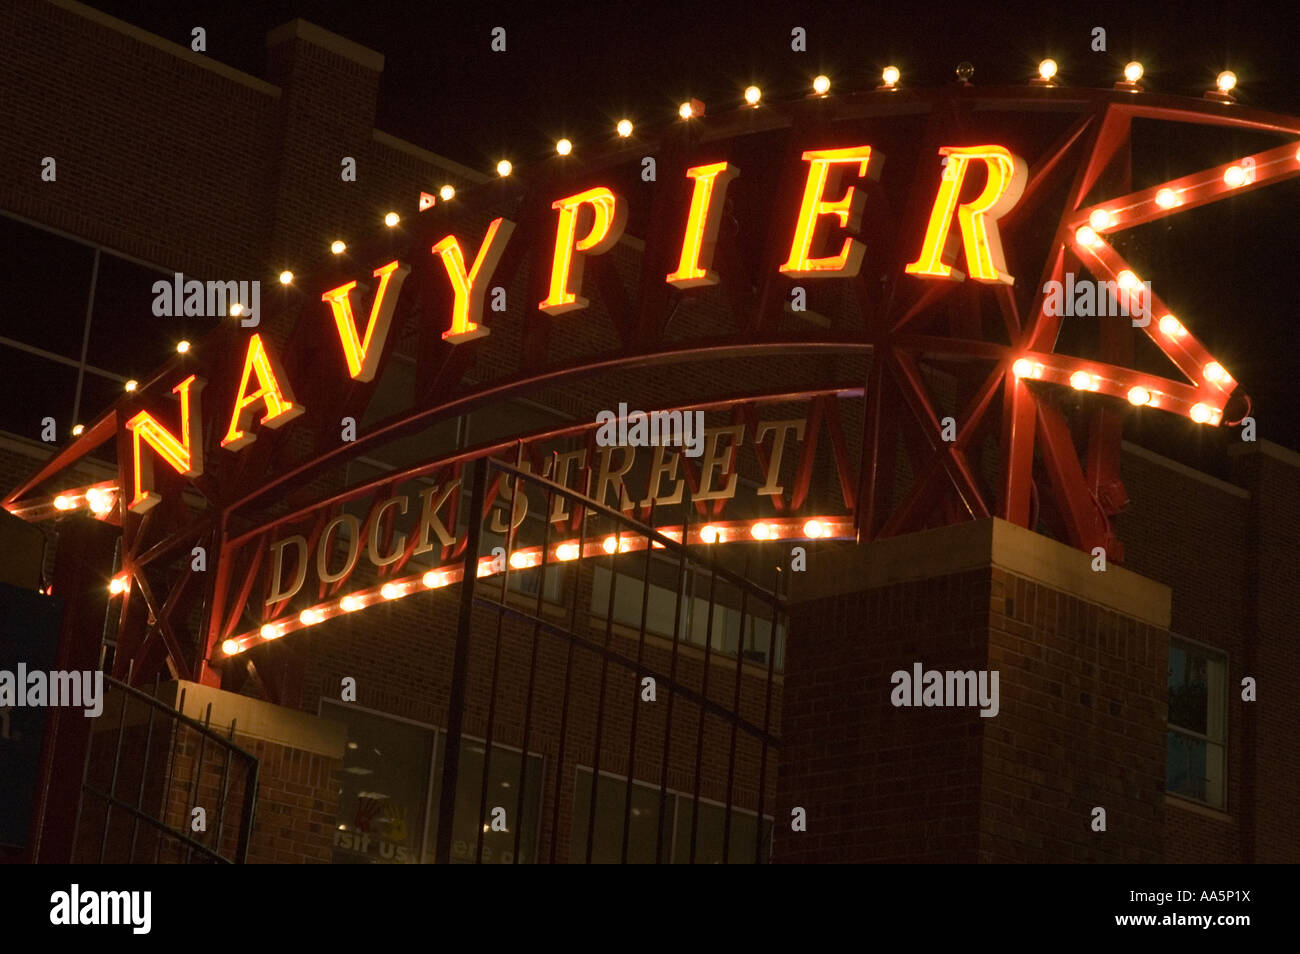 Entrance Archway Navy Pier Chicago Stock Photos & Entrance Archway ...